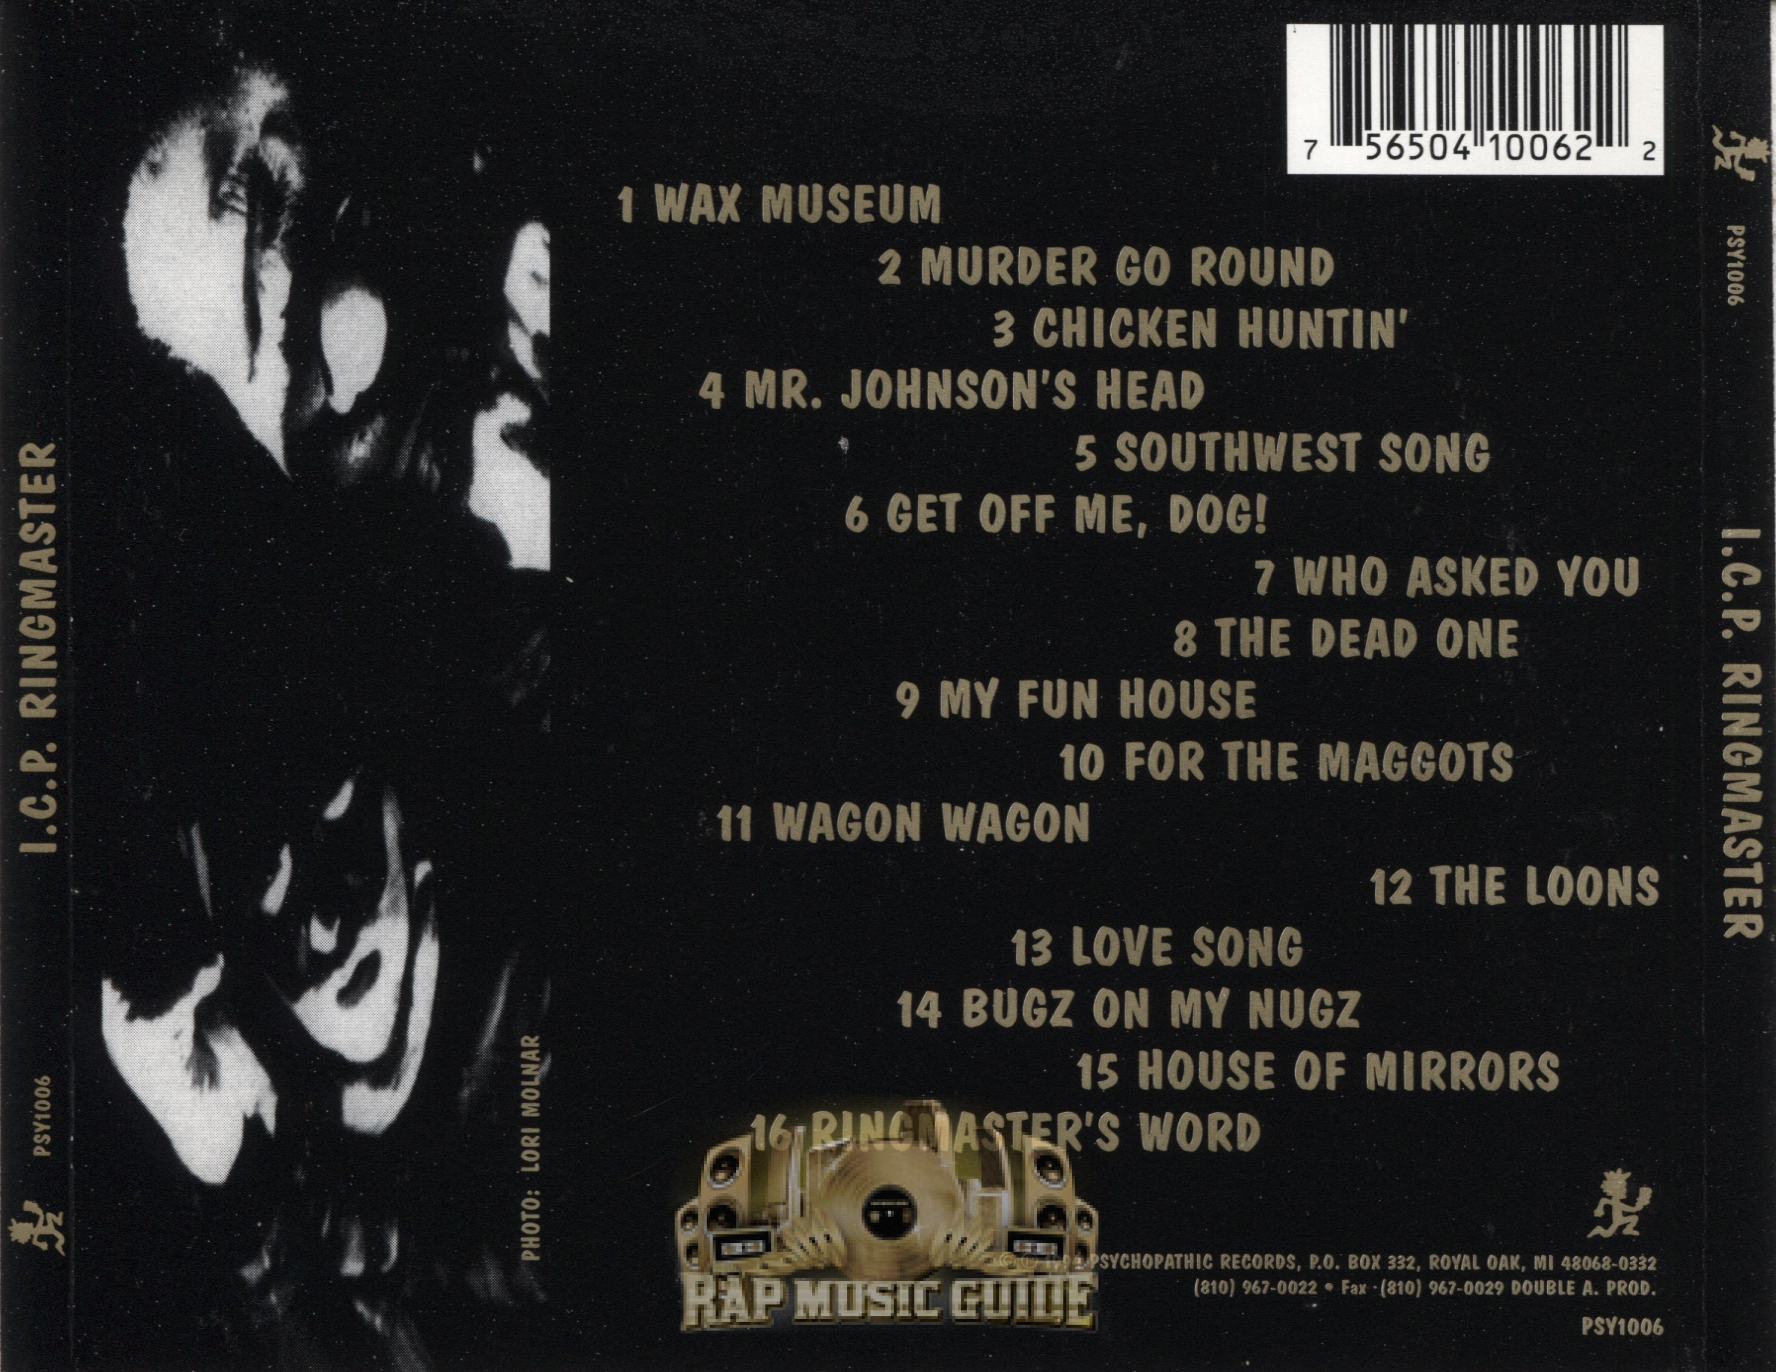 Icp Albums And Songs List Cool insane clown posse - ringmaster: cd | rap music guide